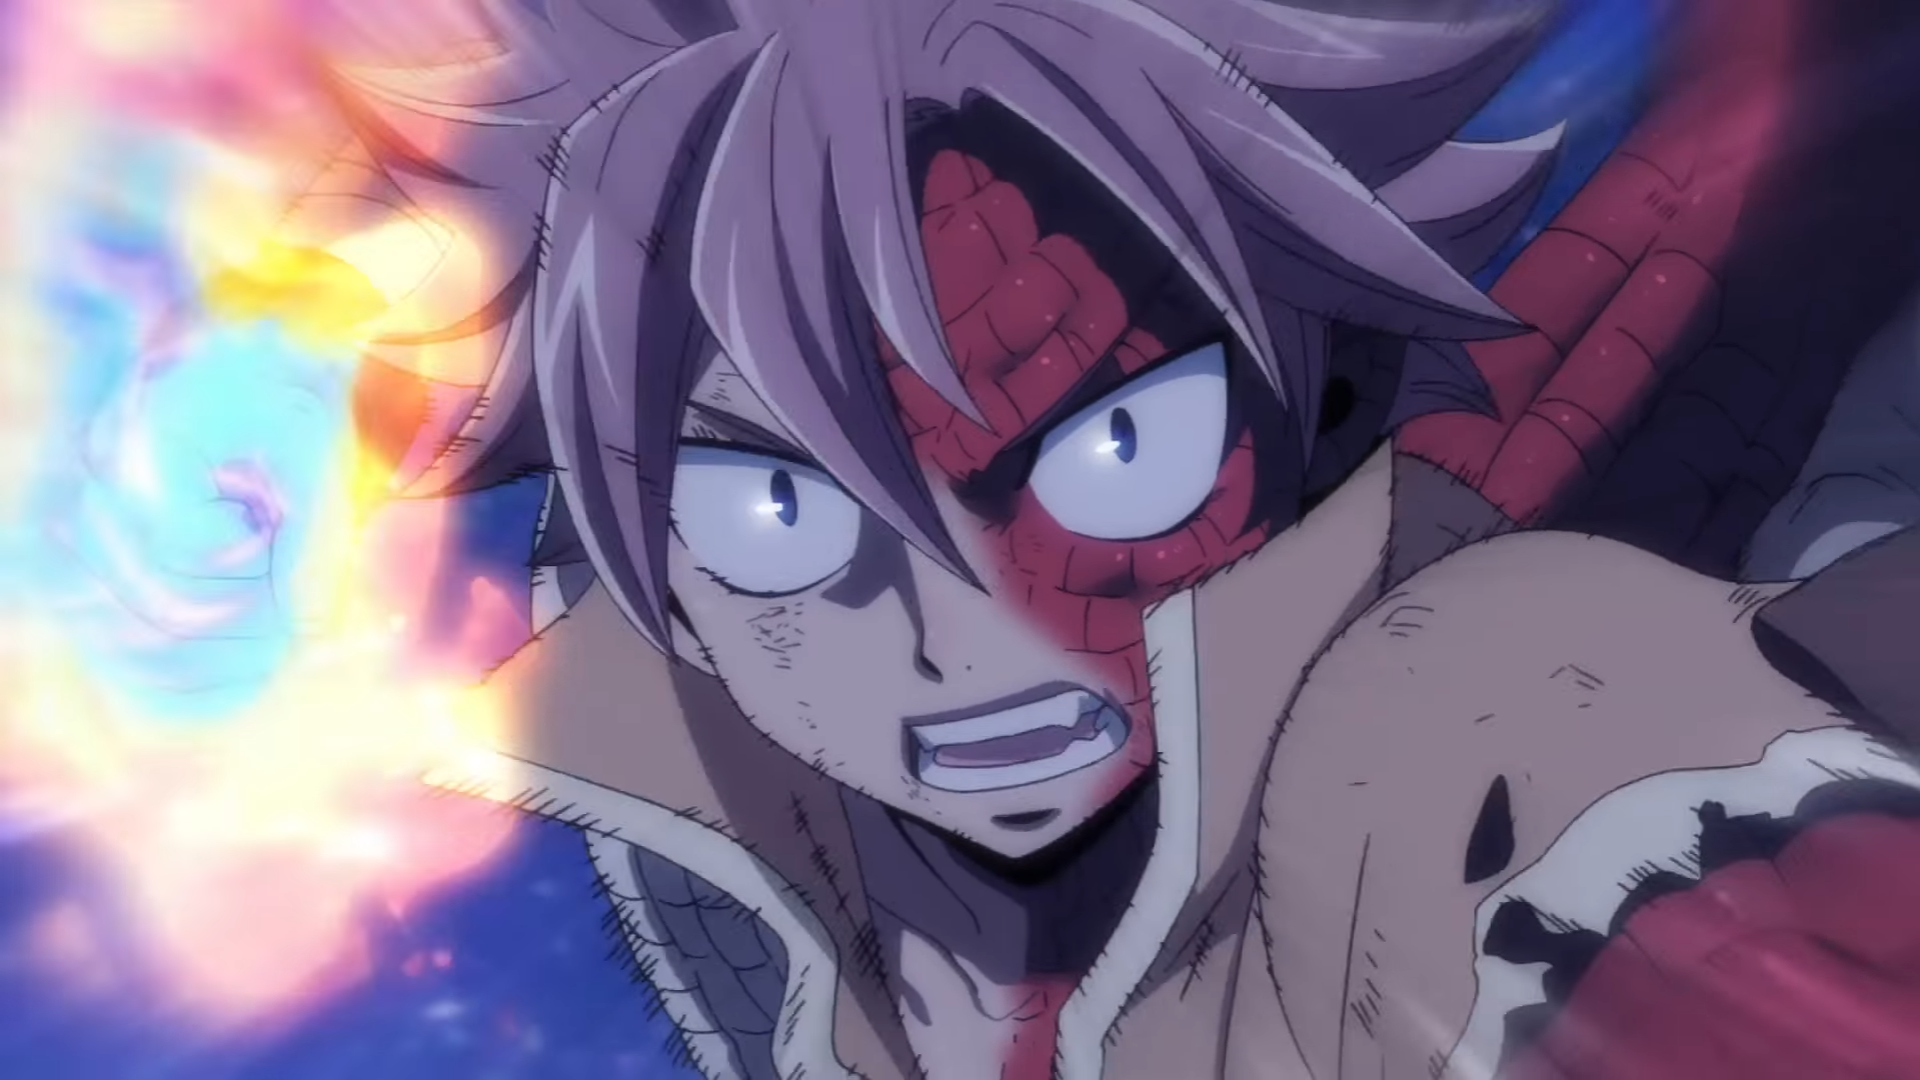 Dragon Cry Natsu With Url For Trailer Movie By Kox Bori 3219 On